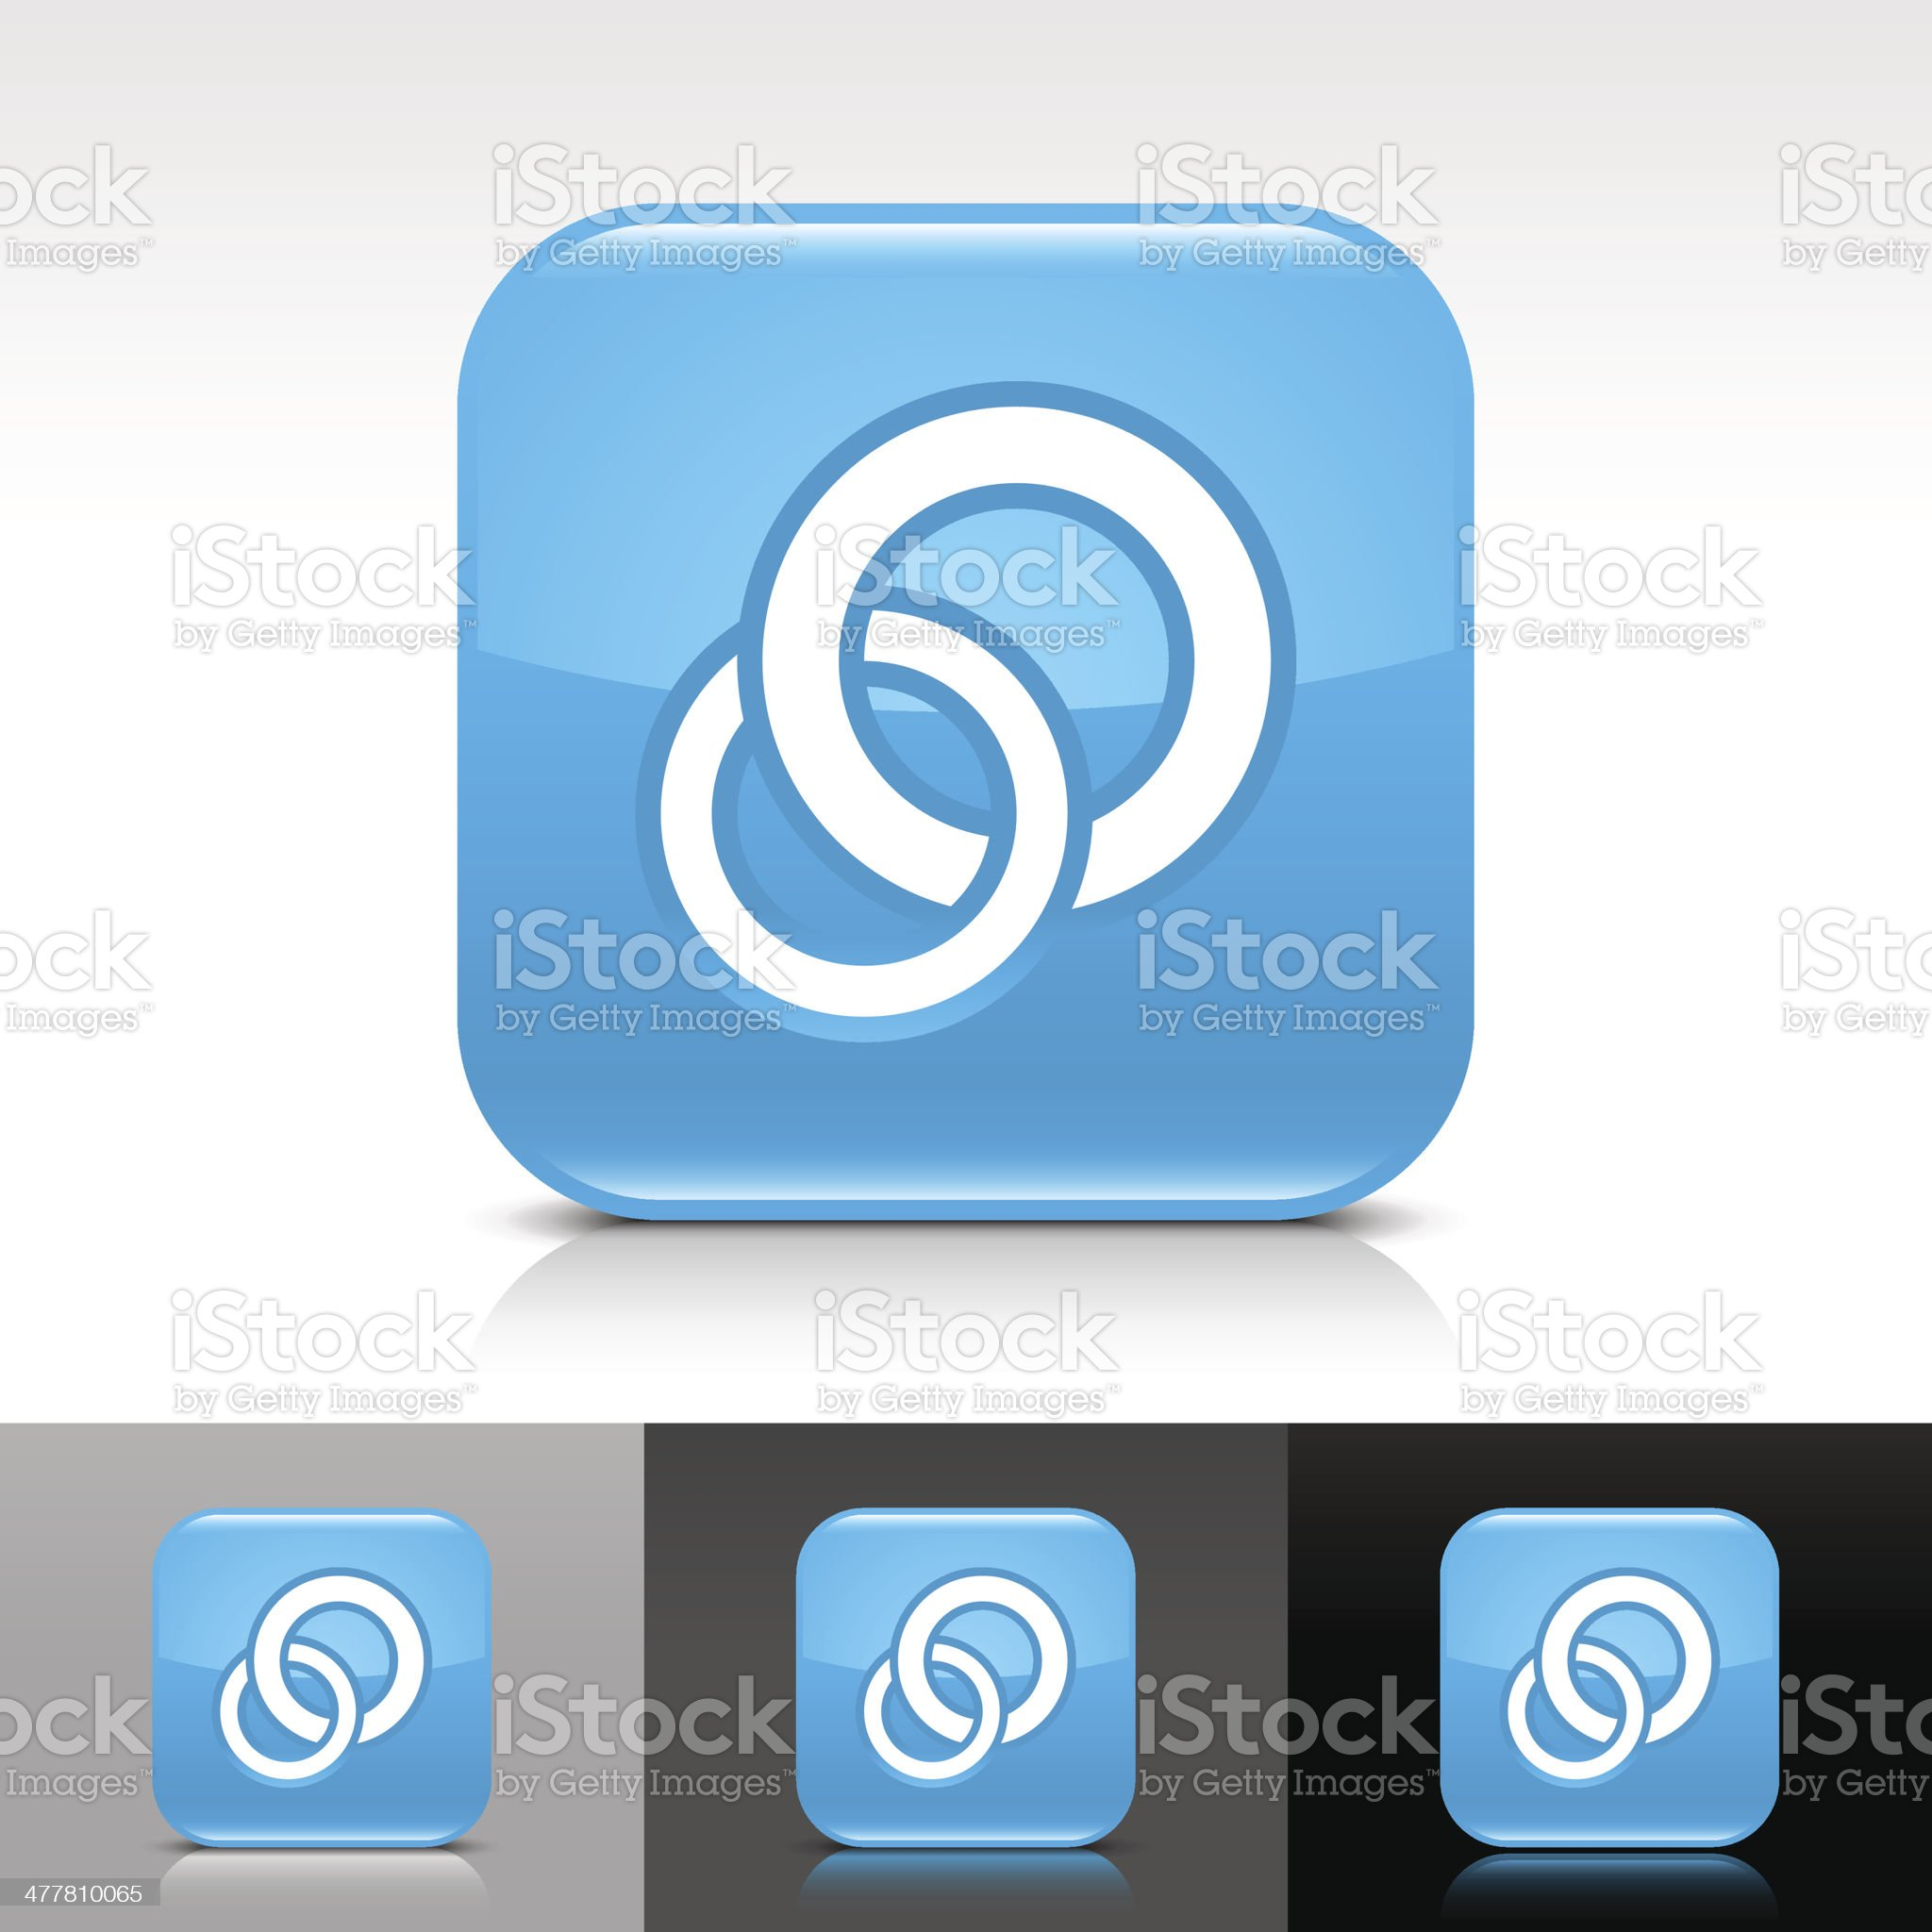 Blue icon circles sign glossy rounded square web button royalty-free stock vector art